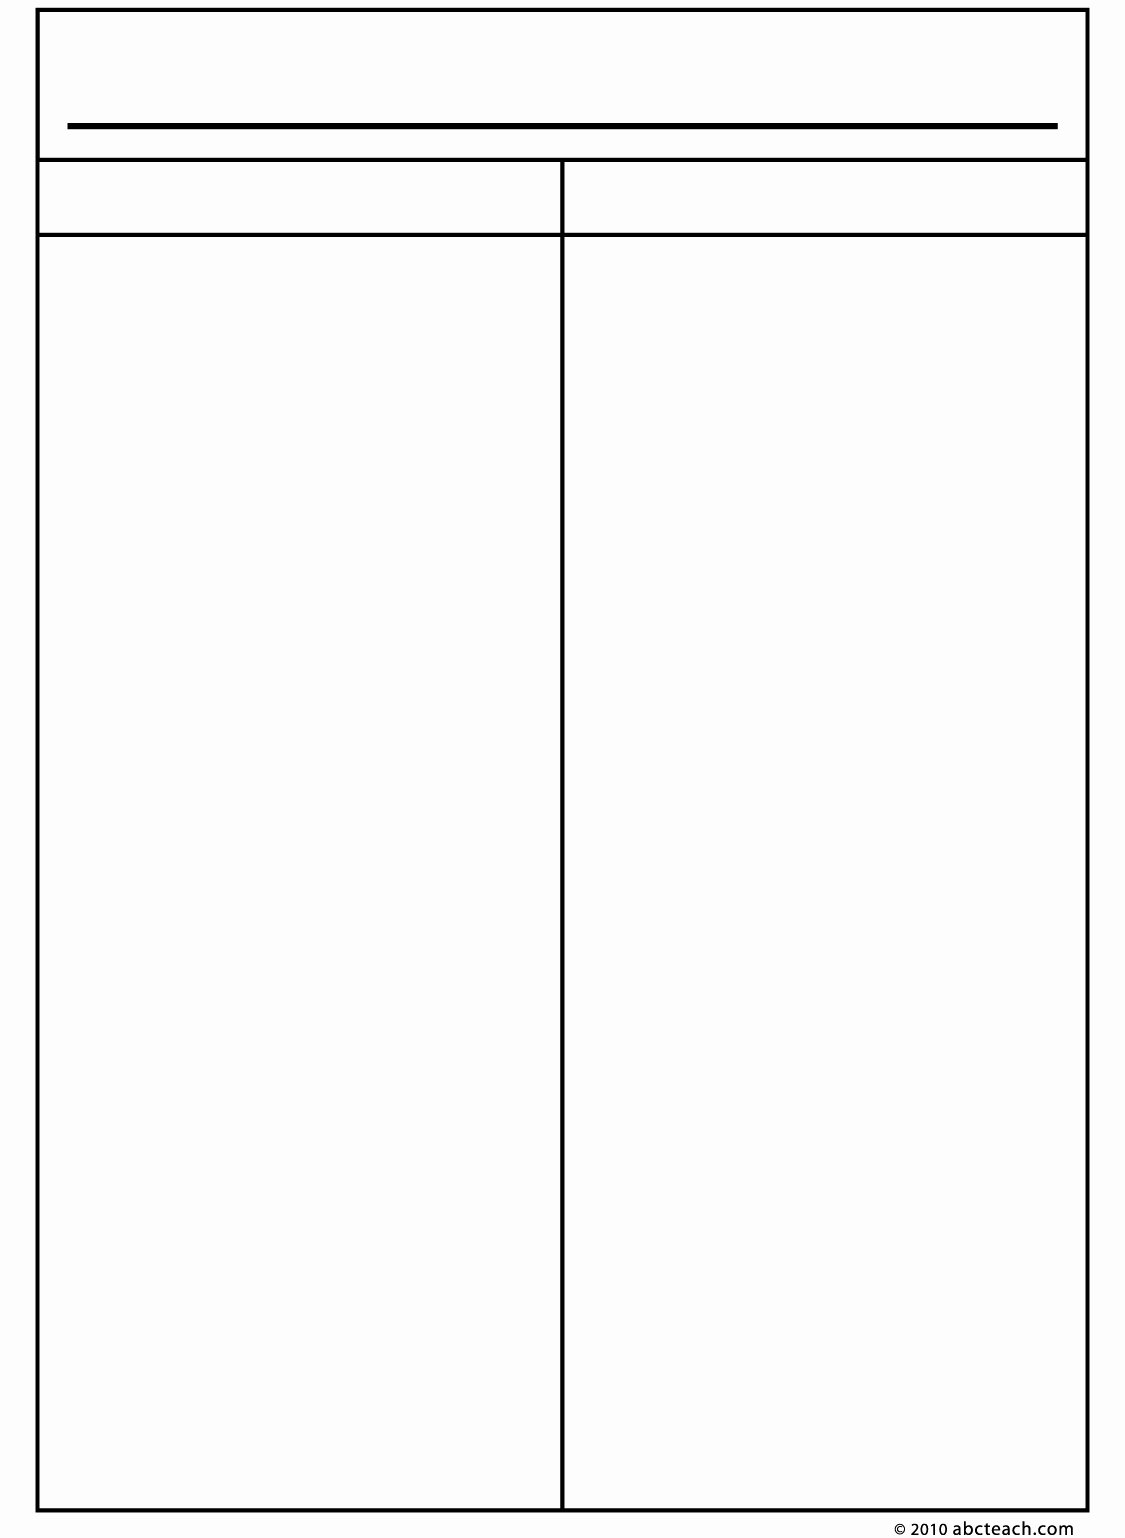 10 Best Of Blank 2 Column Chart Template 4 Column